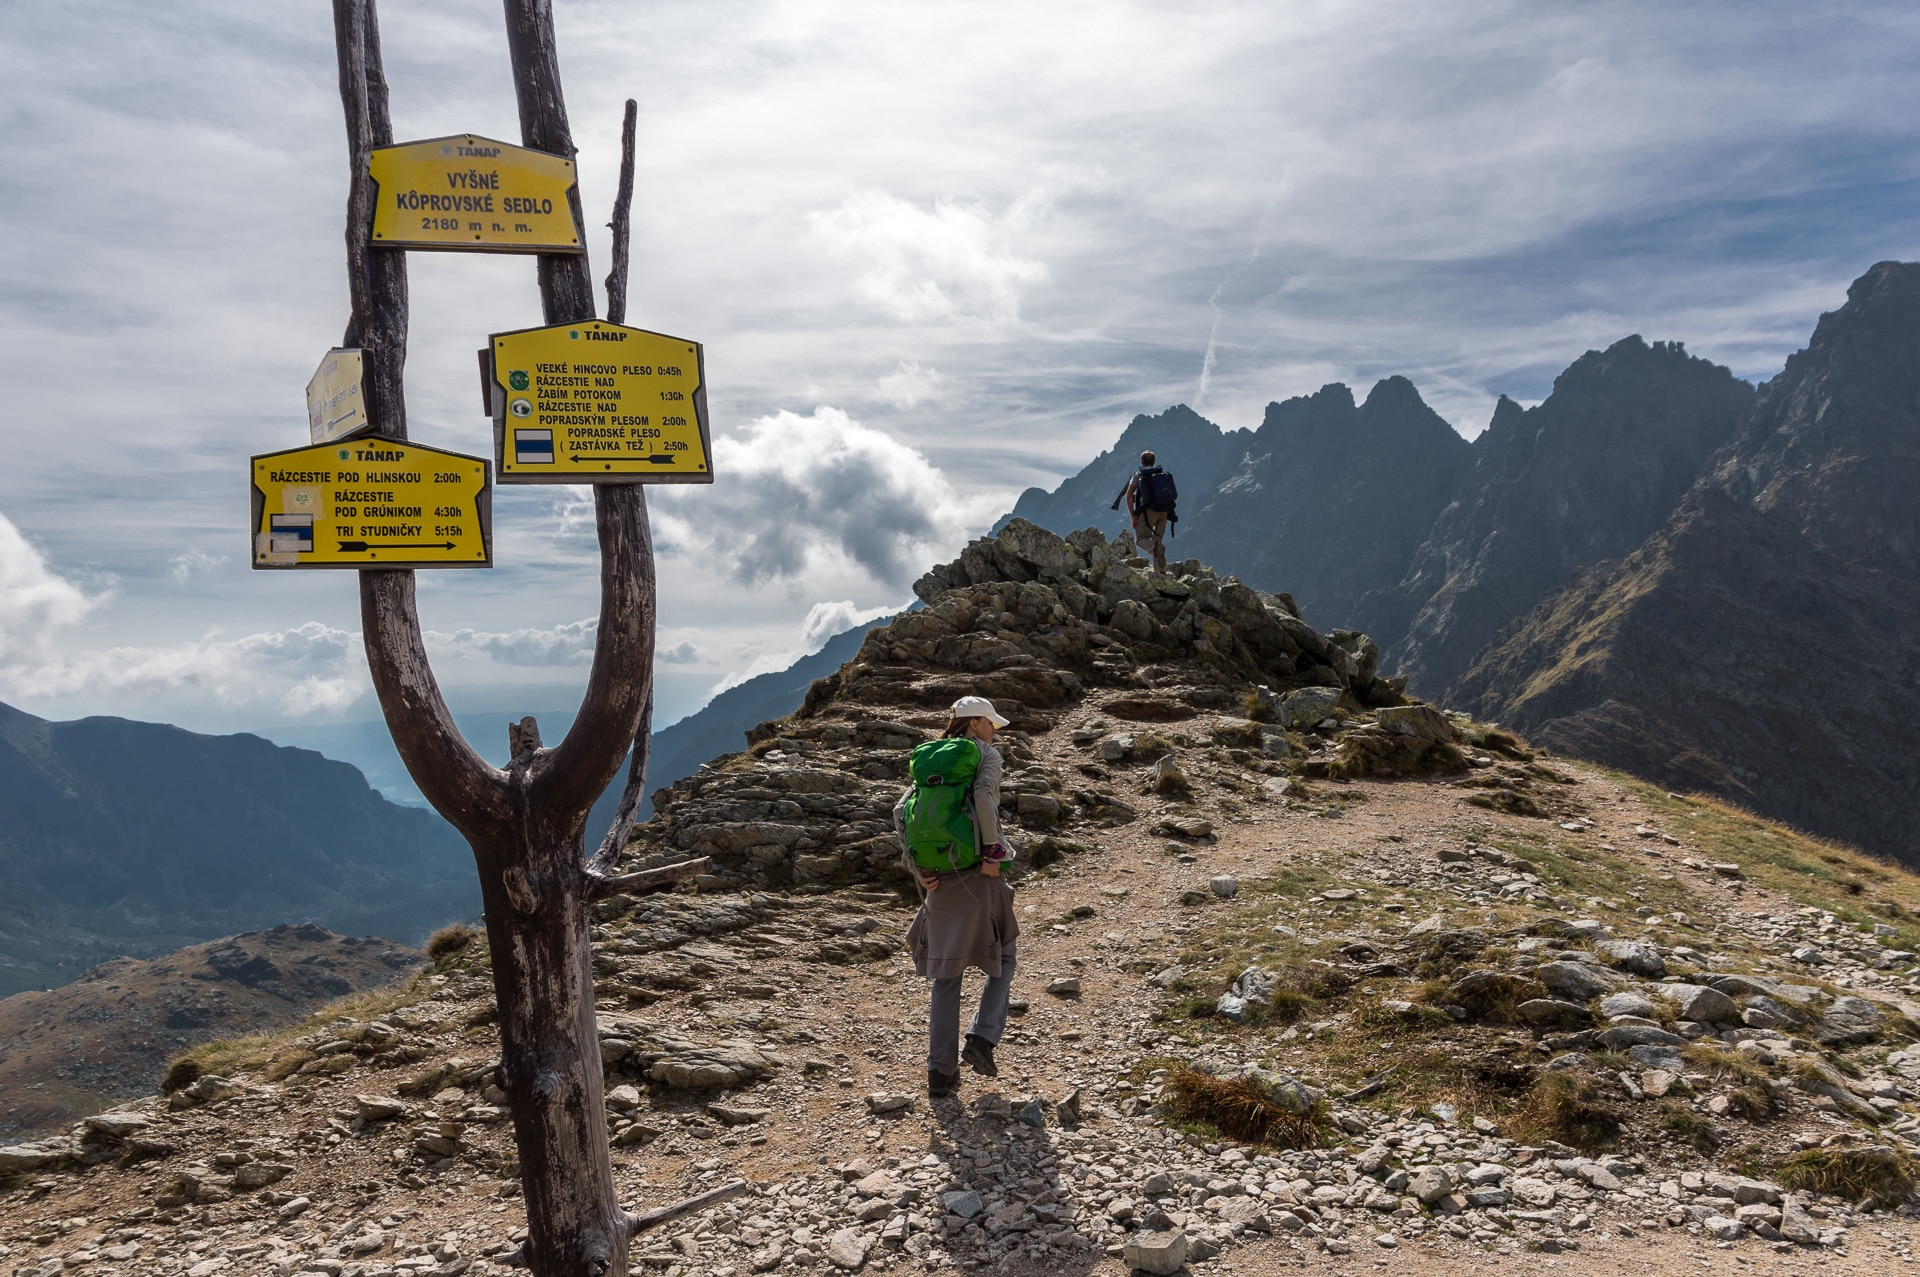 hiking in High Tatras and Koprovske sedlo